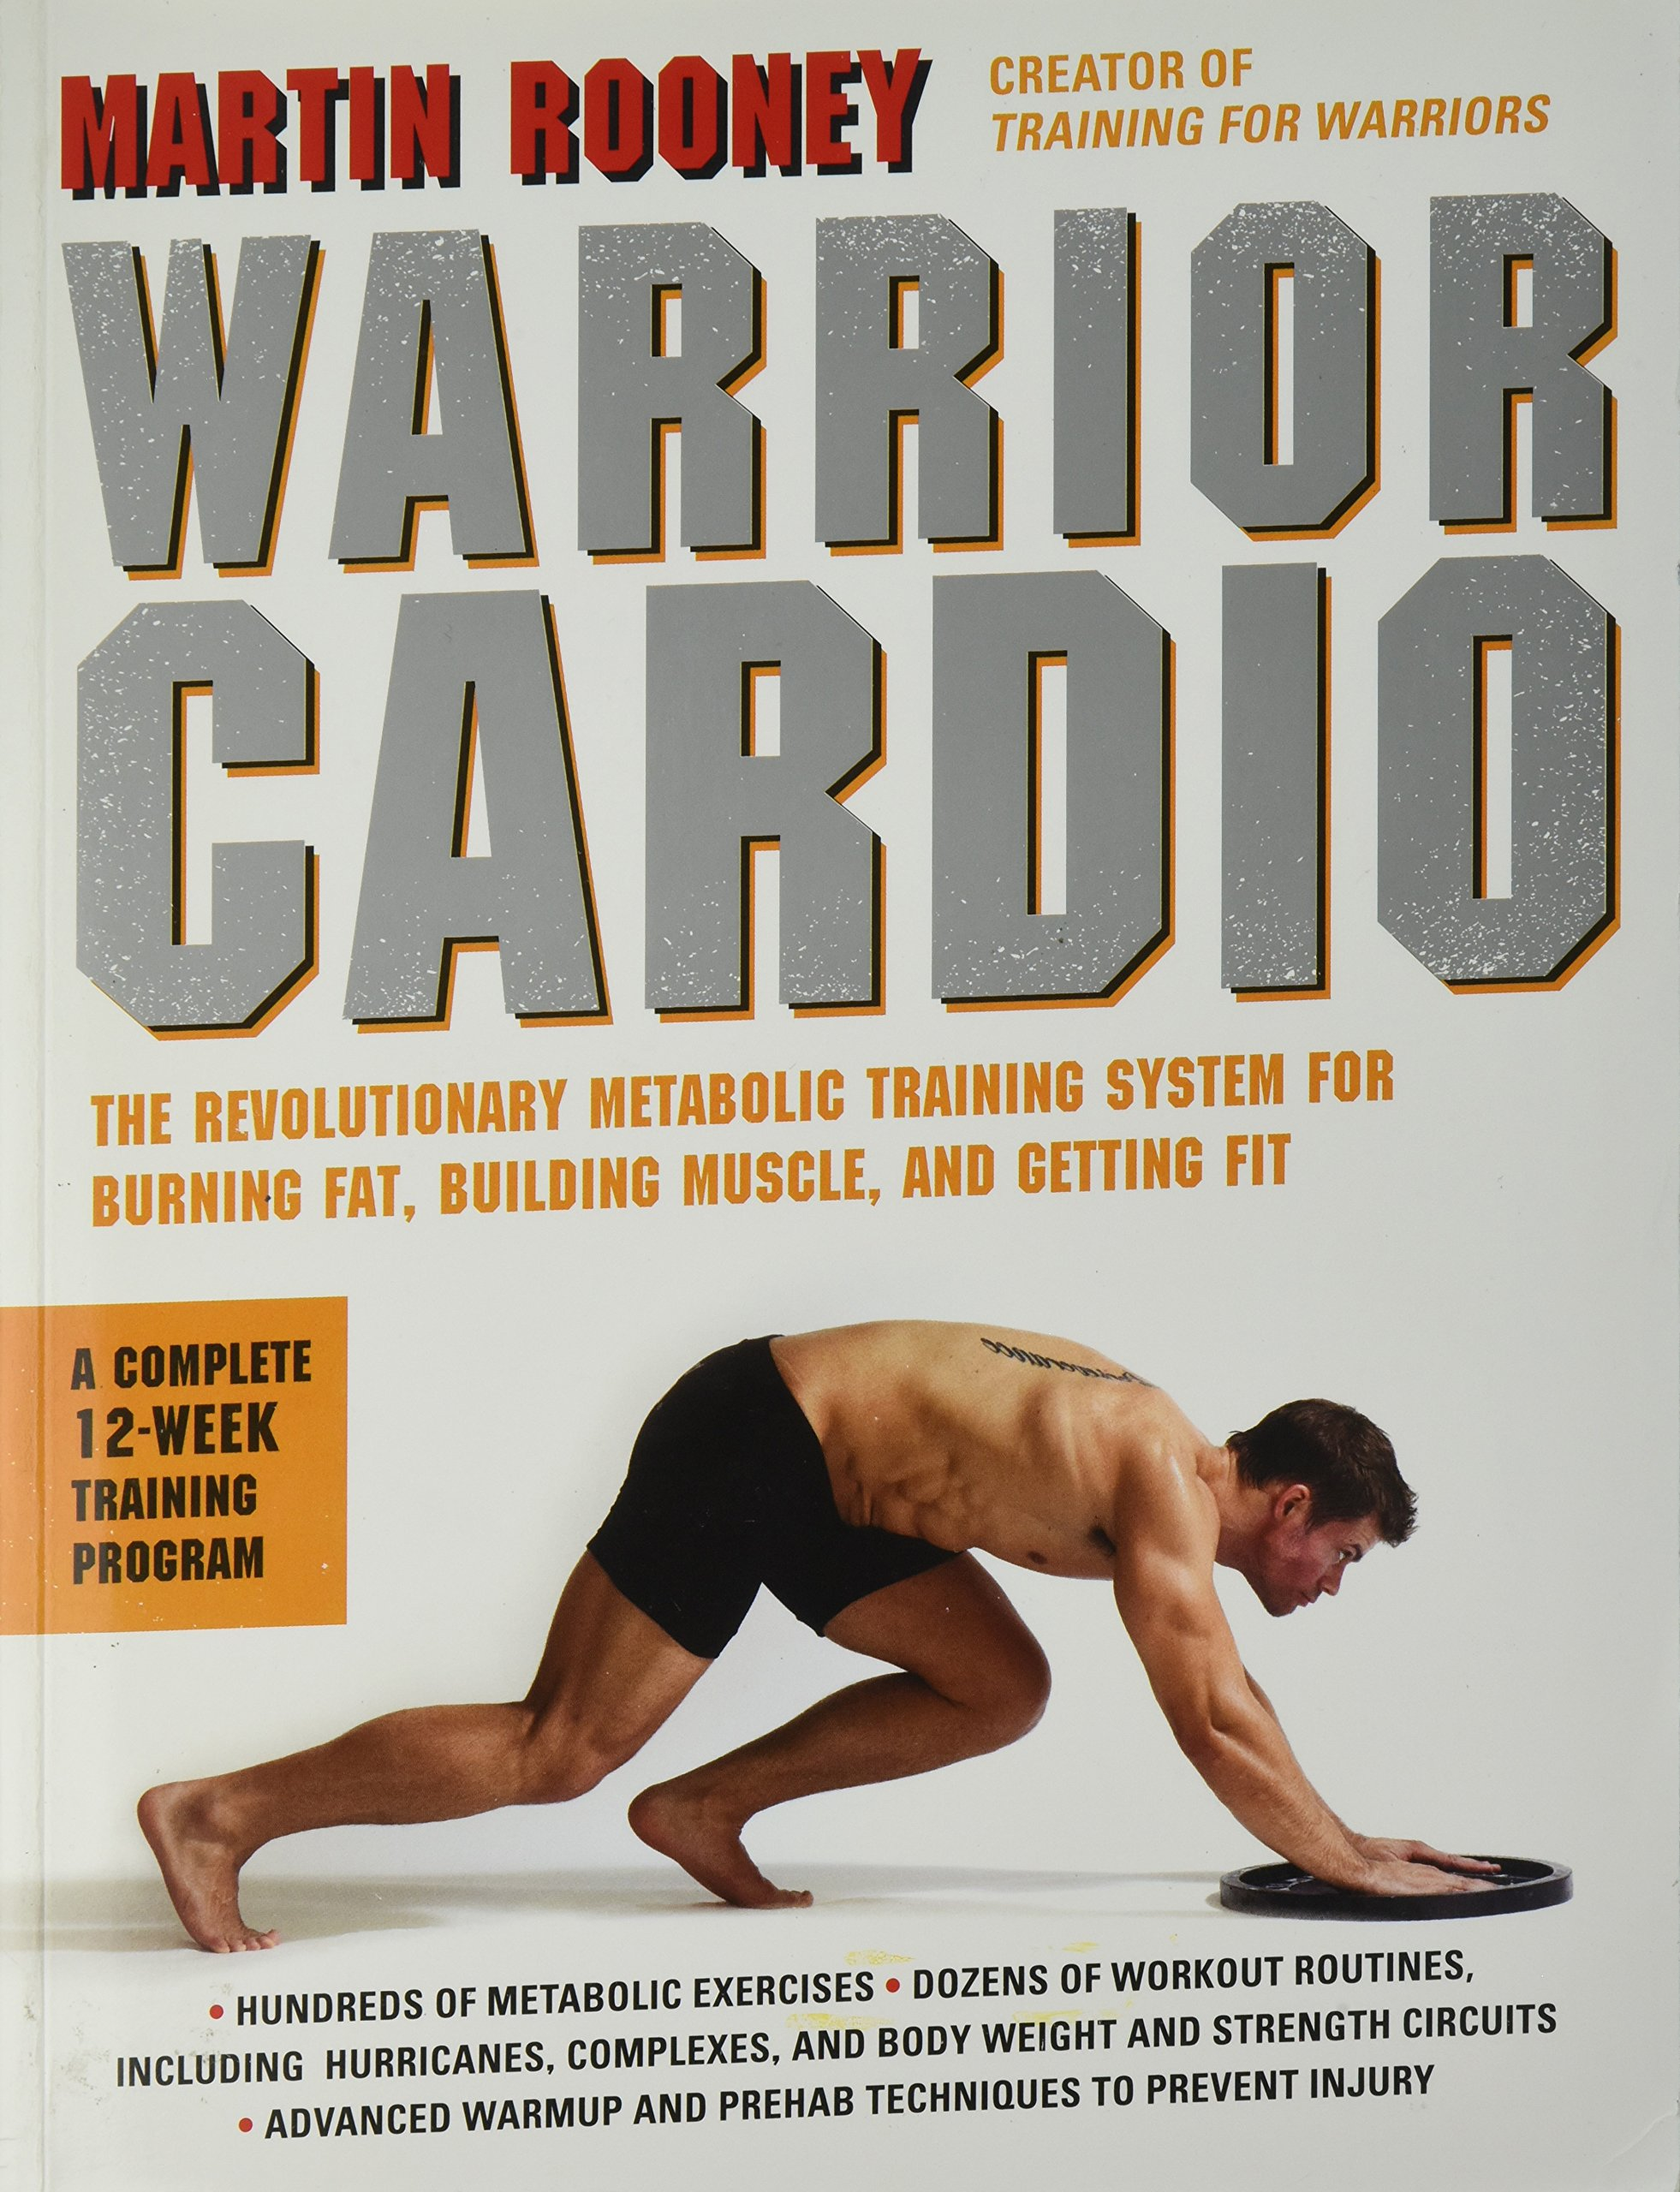 Warrior cardio: the revolutionary metabolic training system for